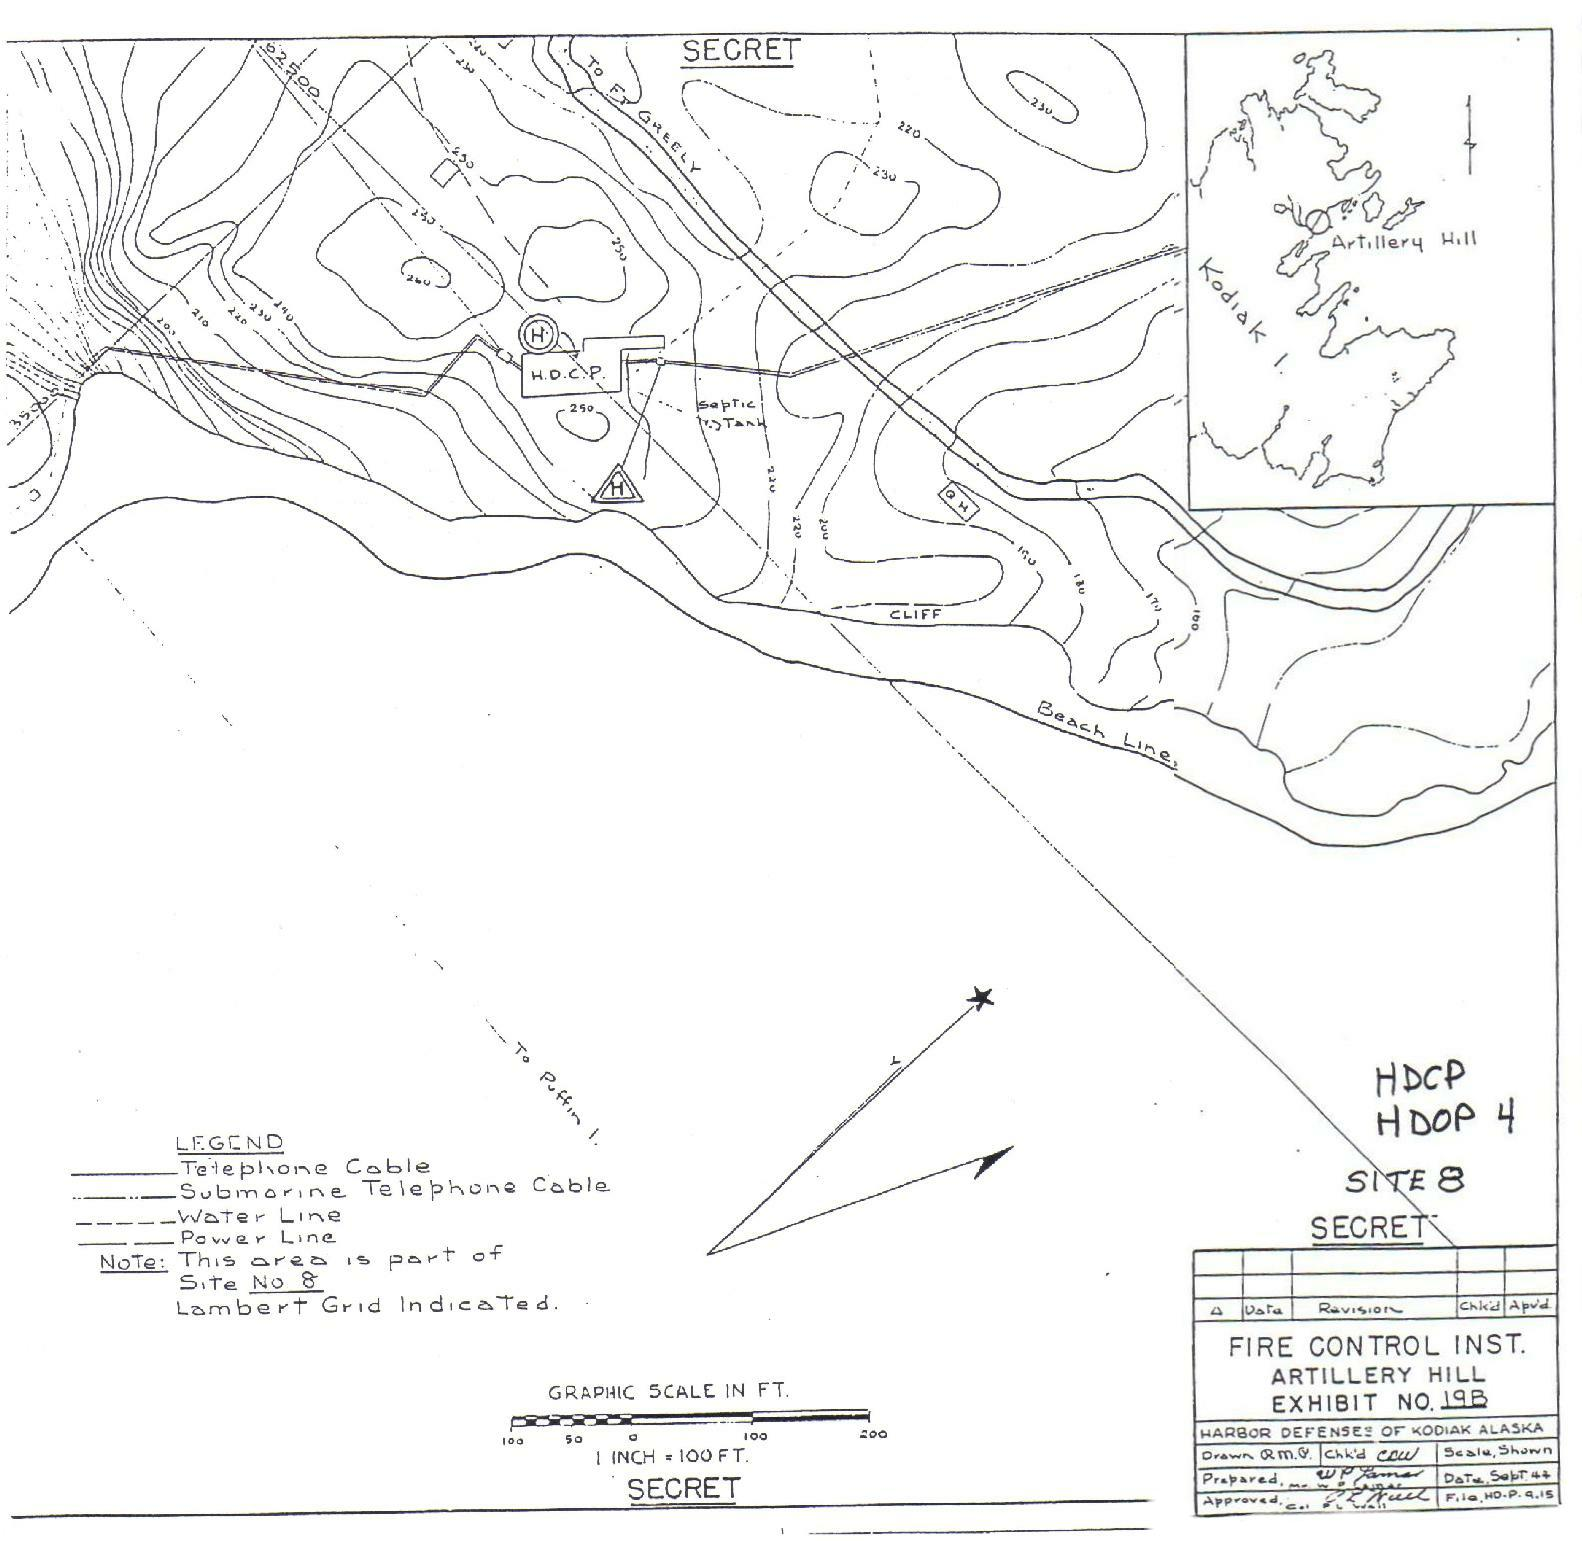 SUPPLEMENT ANNEXES 1 Nov 1944 to HARBOR DEFENSE PROJECT OF